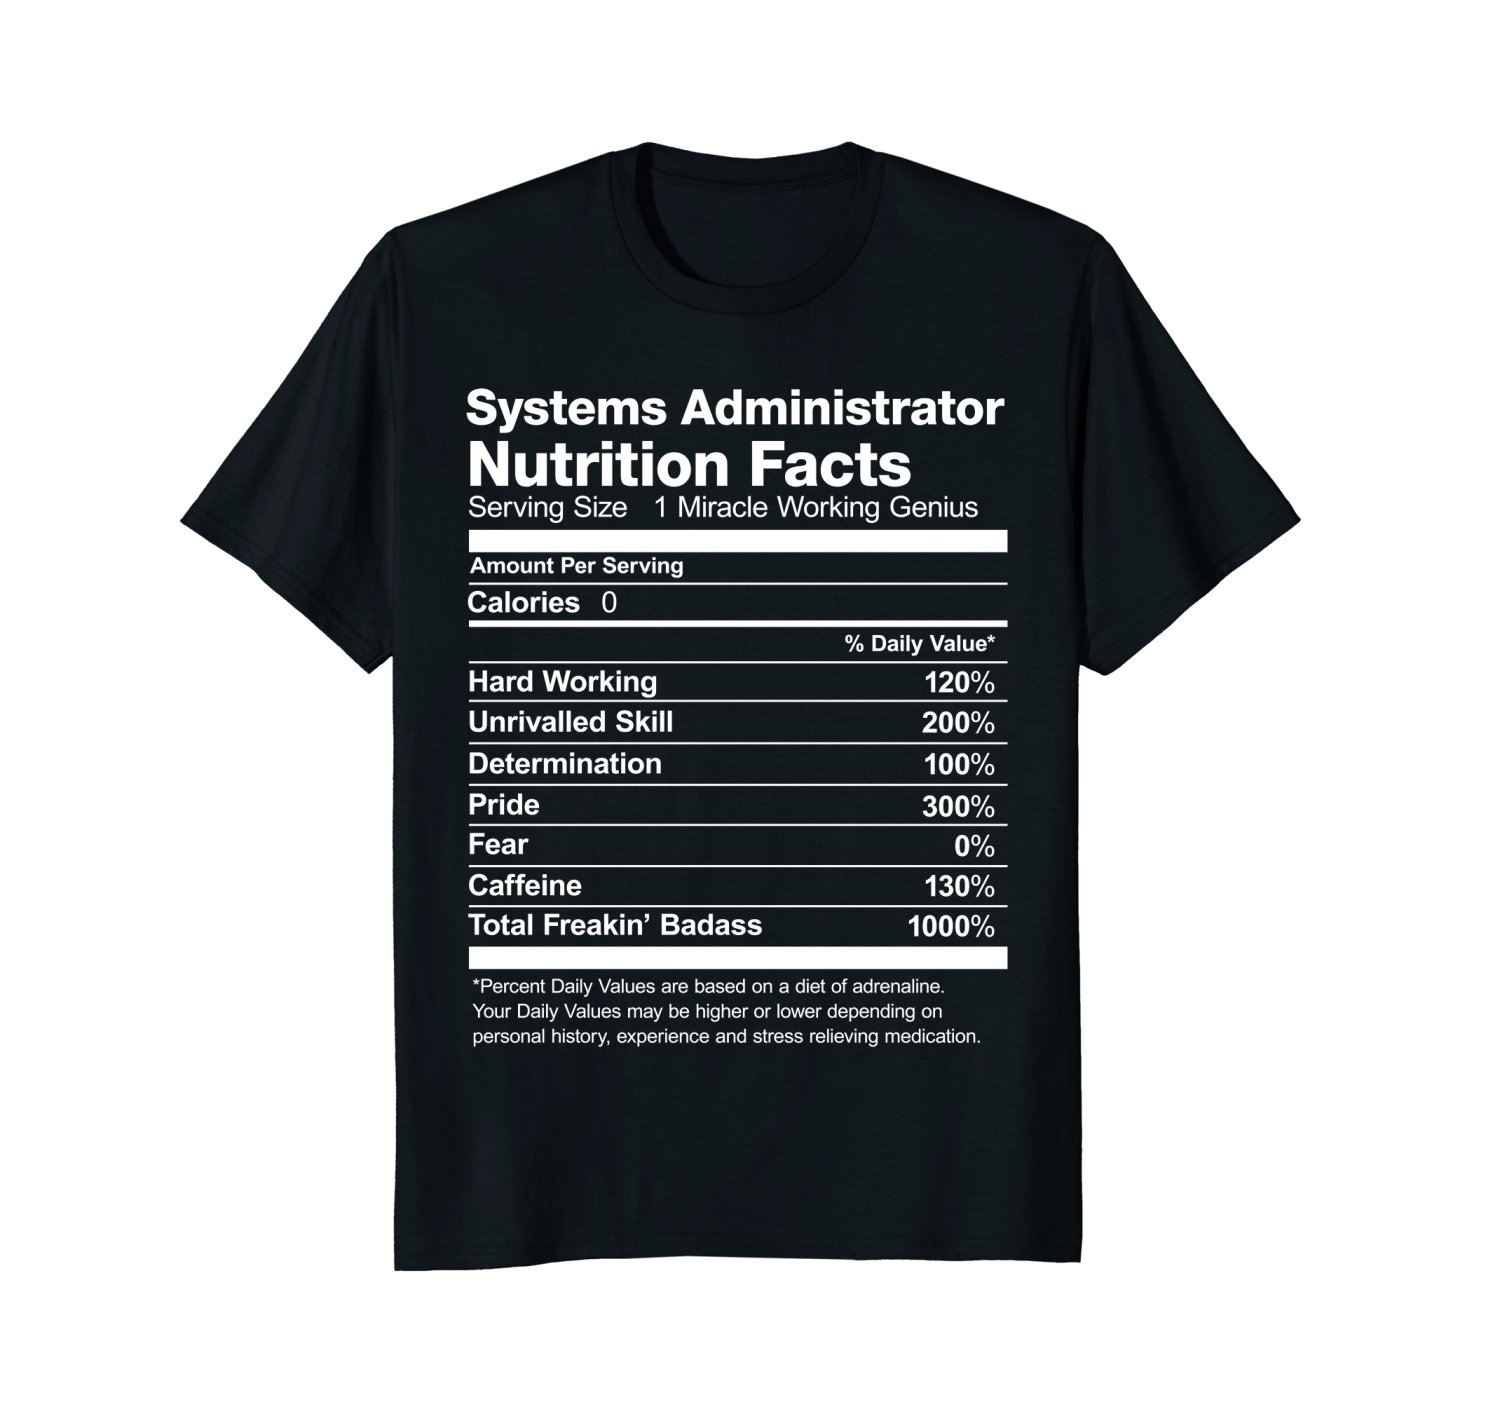 Systems Administrator Nutrition Facts Funny Gift T-Shirt Men Tee Shirt Tops Short Sleeve Cotton Fitness T Shirts Top Tee